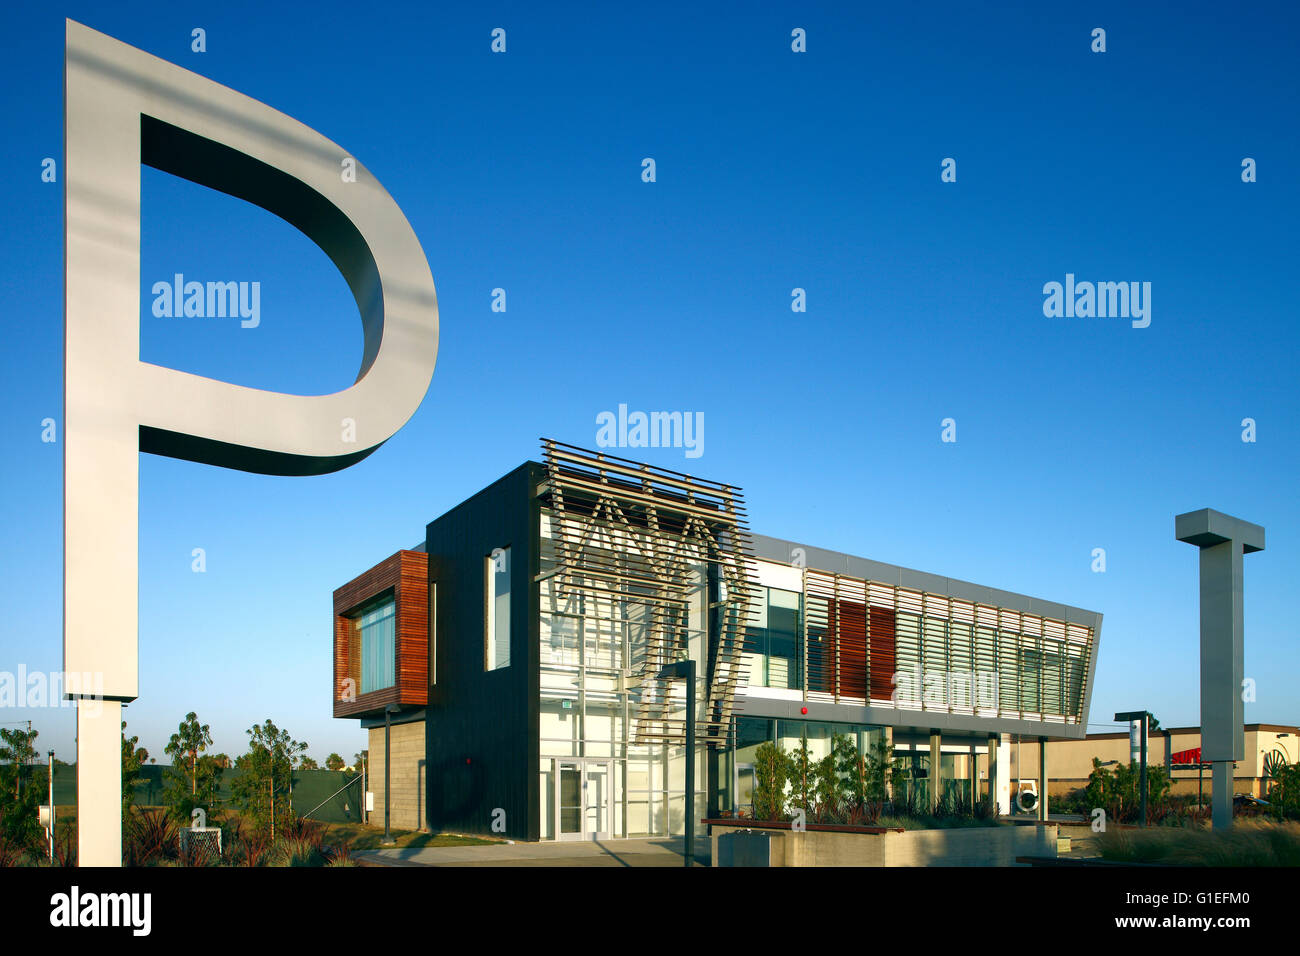 Martin Luther King Jr. Transit Center, Compton, CA by Base Architecture. Close view of a large metal P. - Stock Image